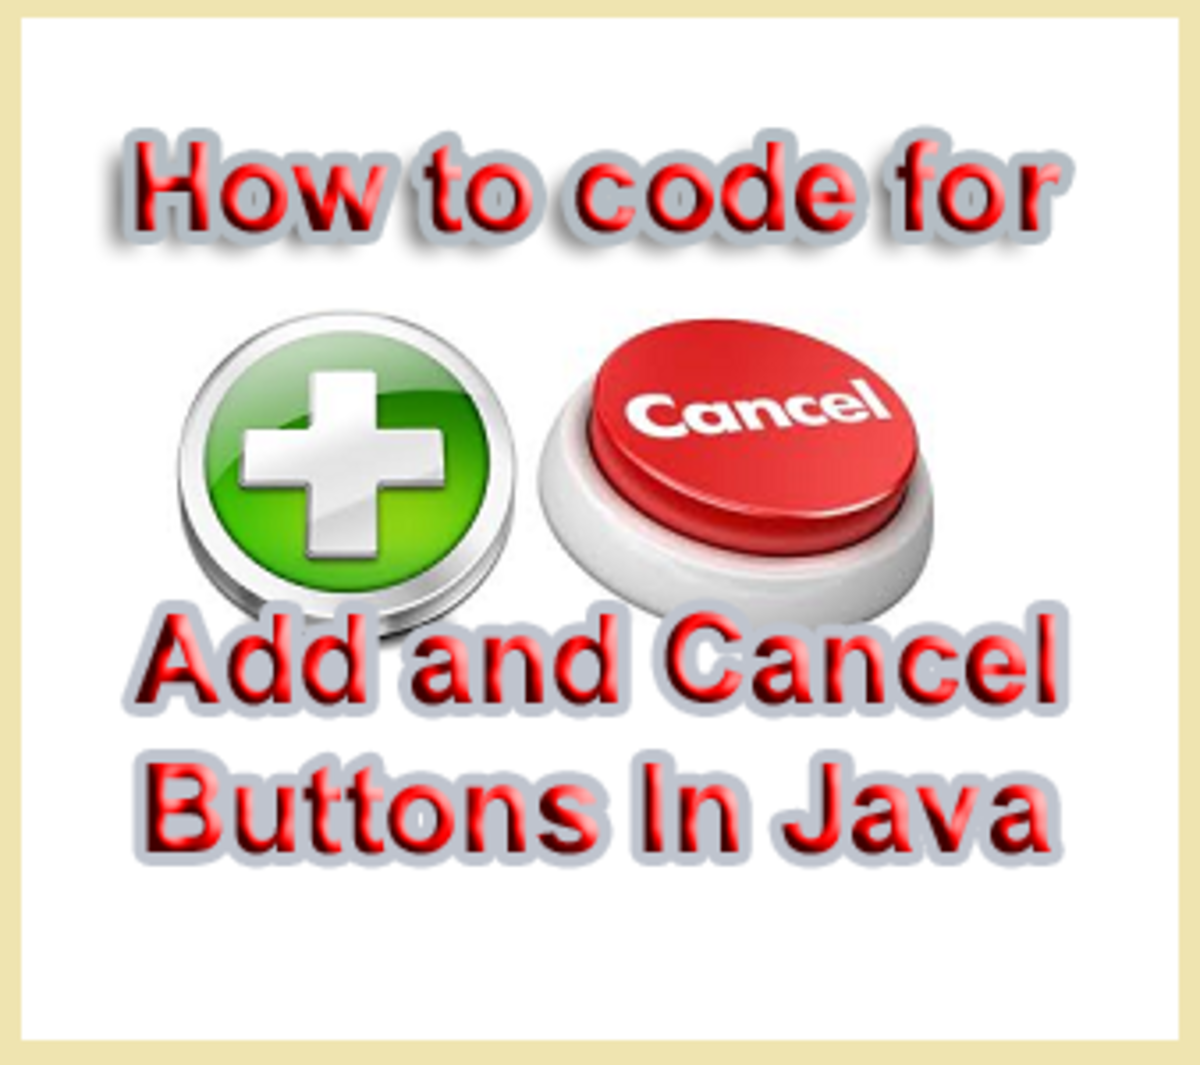 Programming in Java Netbeans - A Step by Step Tutorial for Beginners: Lesson 55